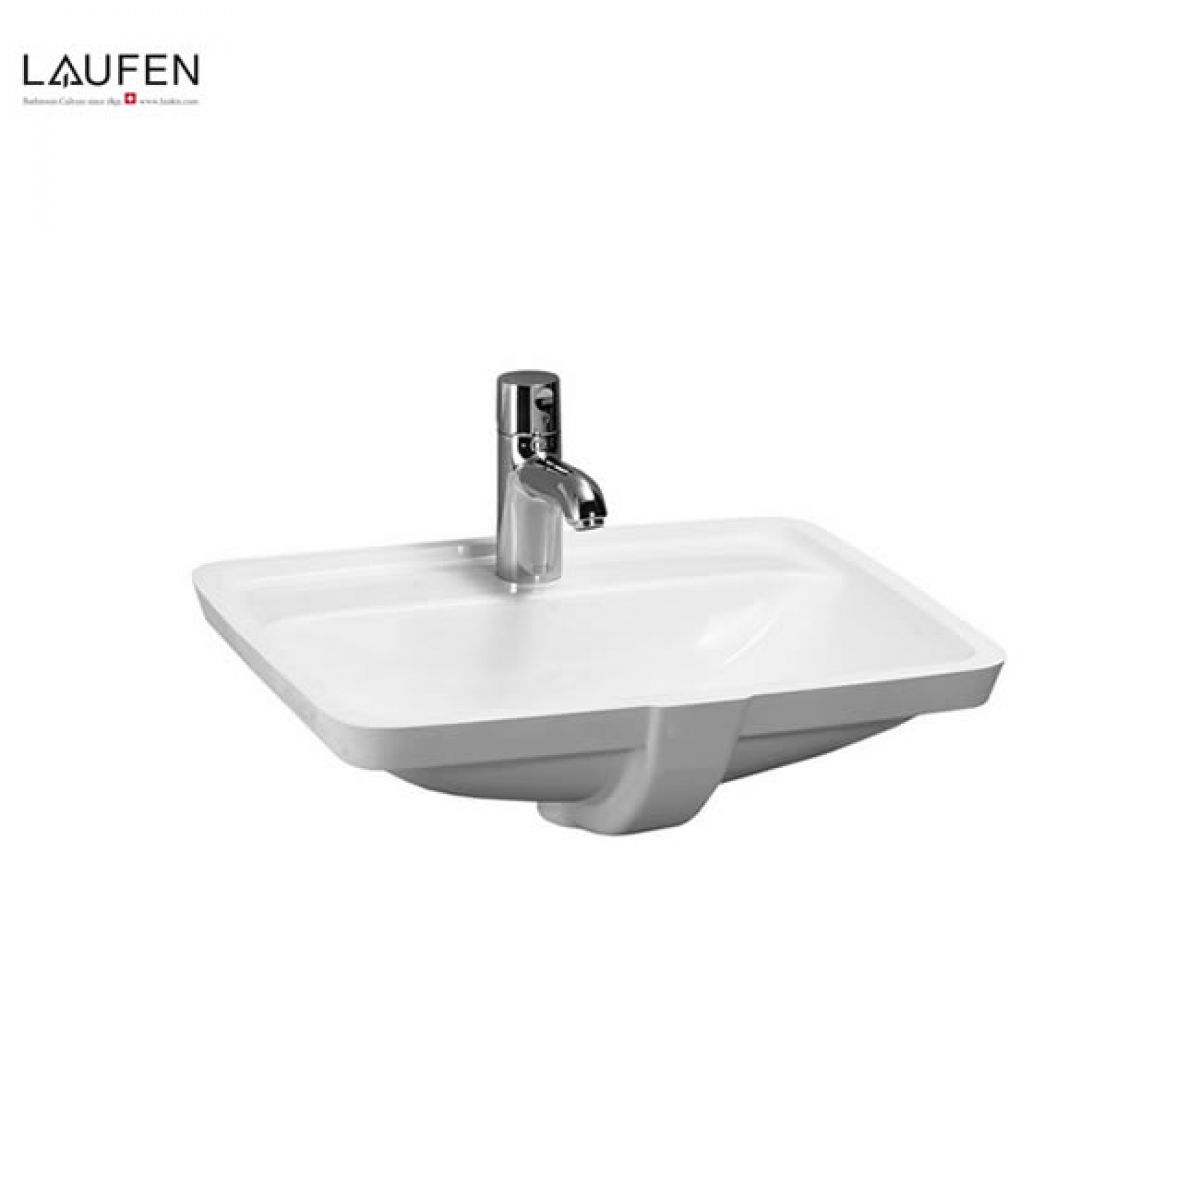 laufen pro s under counter washbasin uk bathrooms. Black Bedroom Furniture Sets. Home Design Ideas